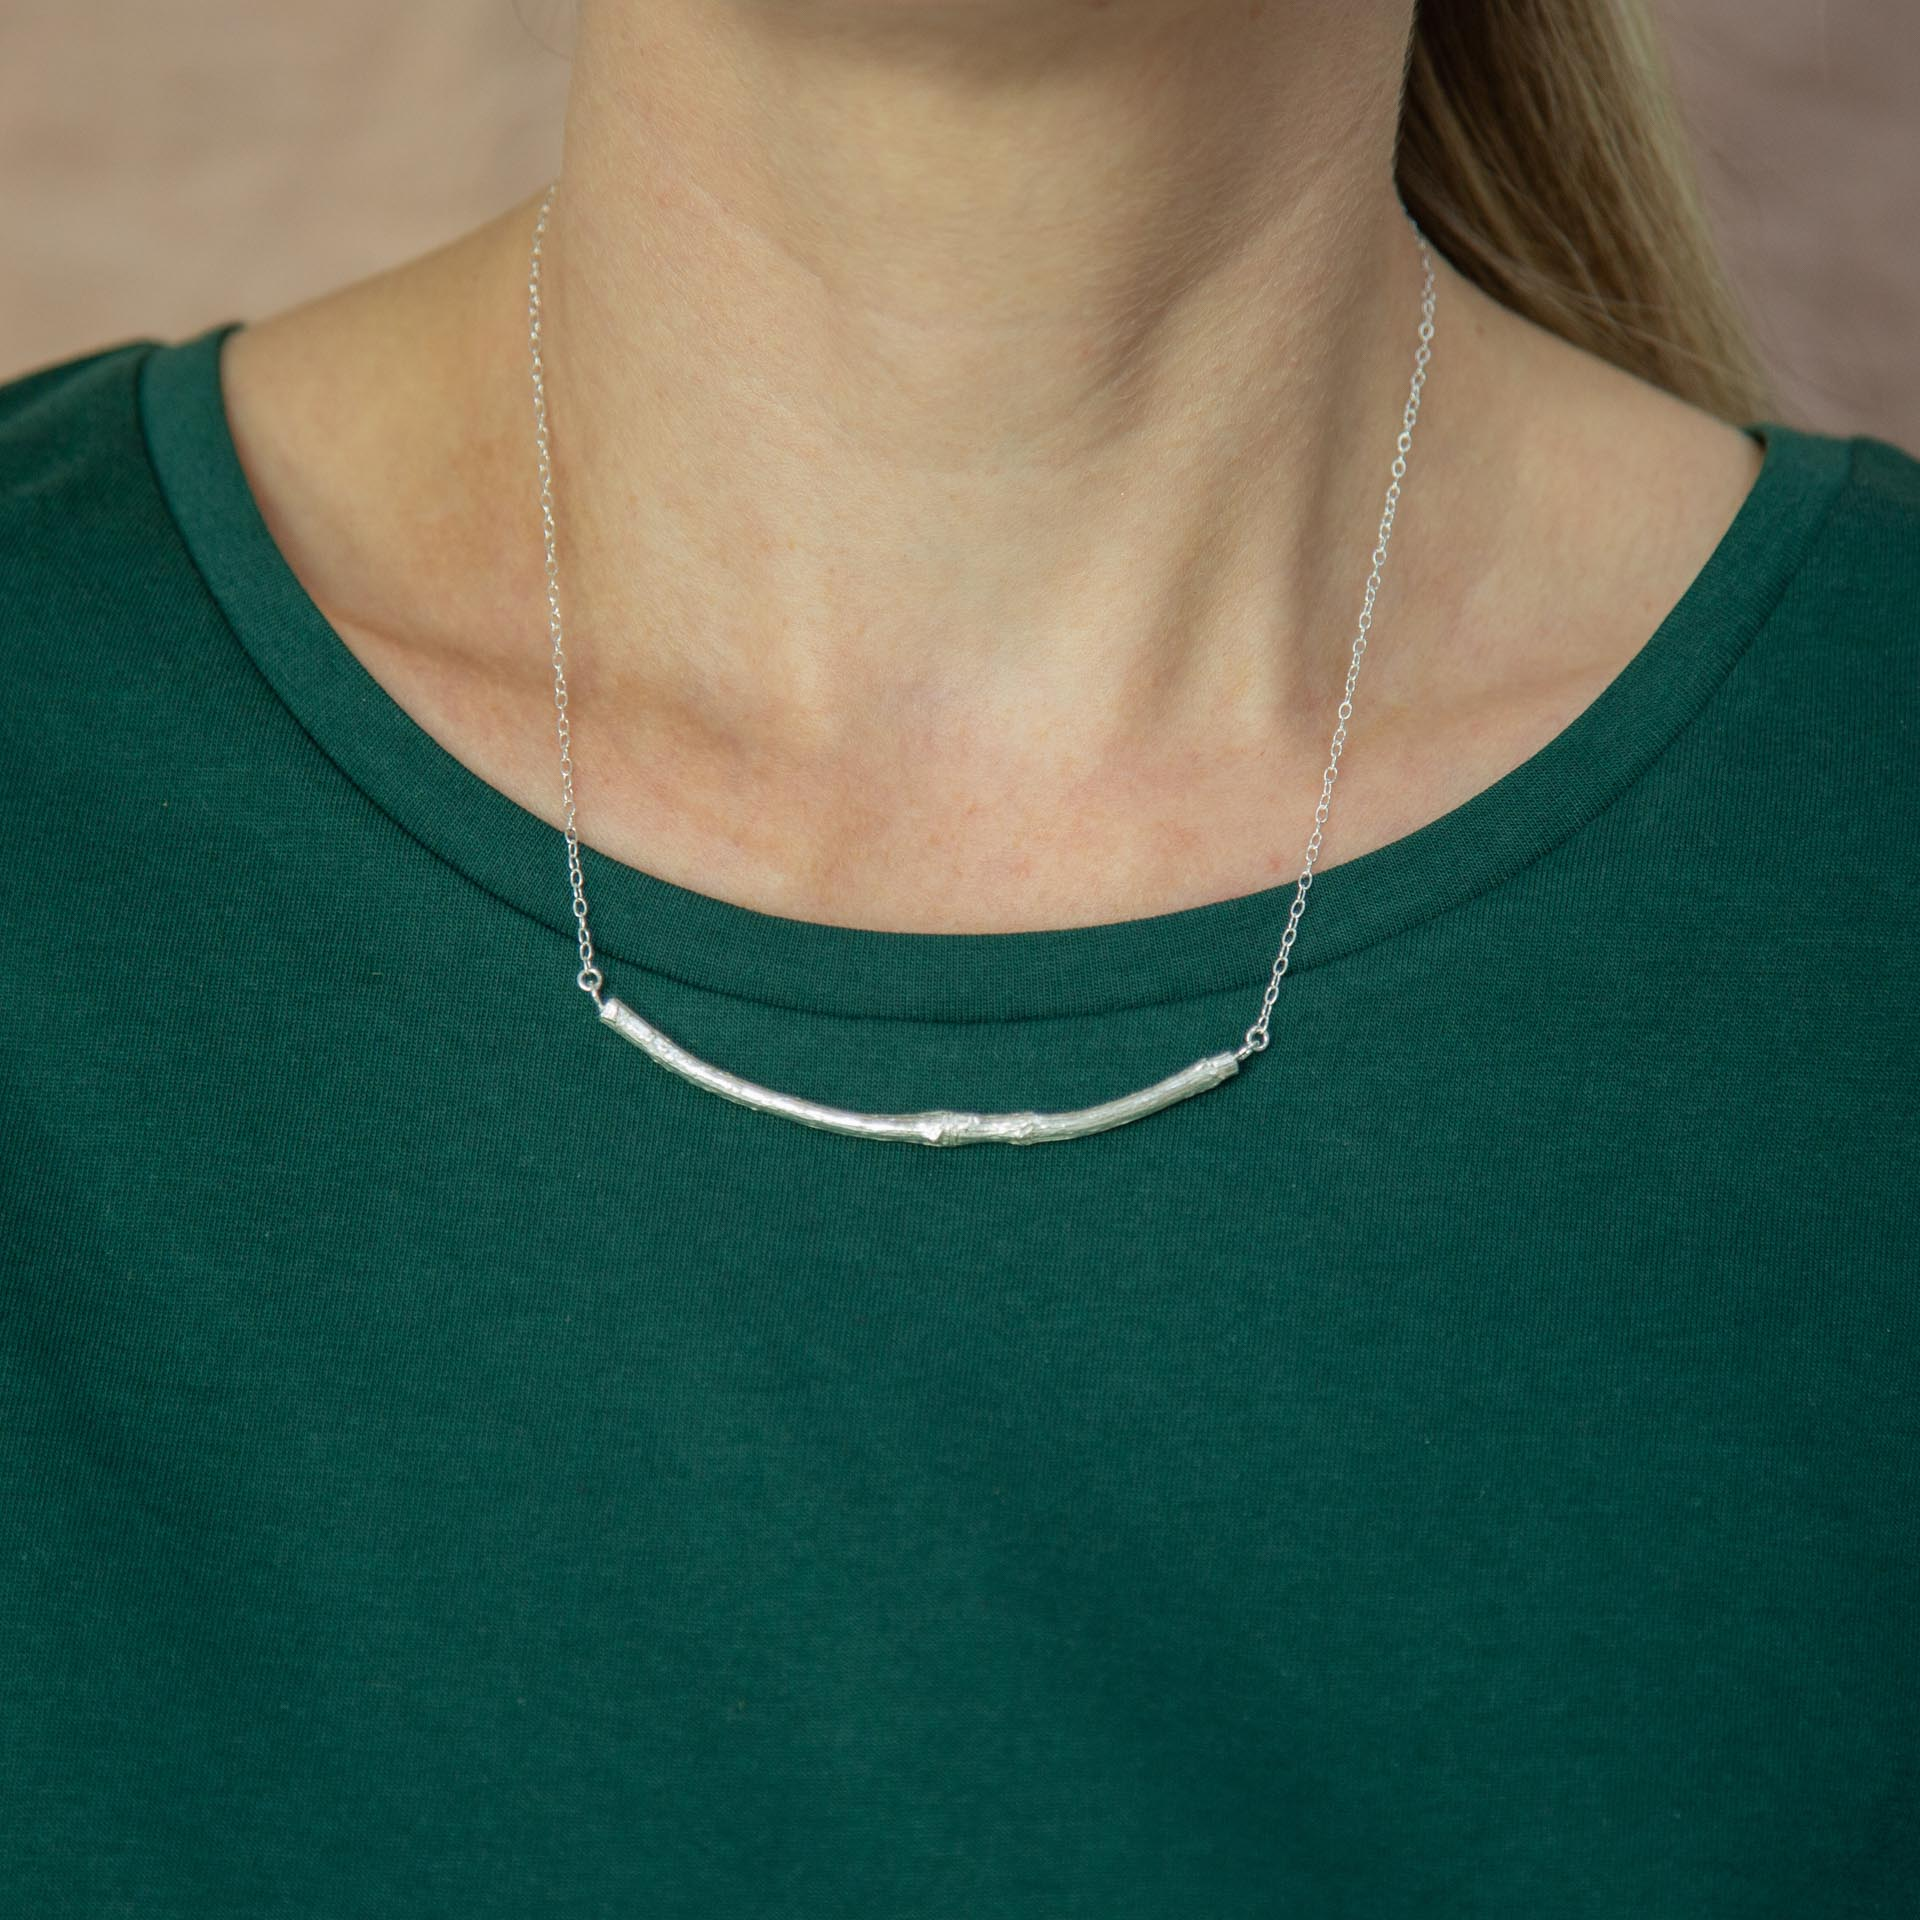 silver smooth twig necklace modelled around neck resting on green t-shirt